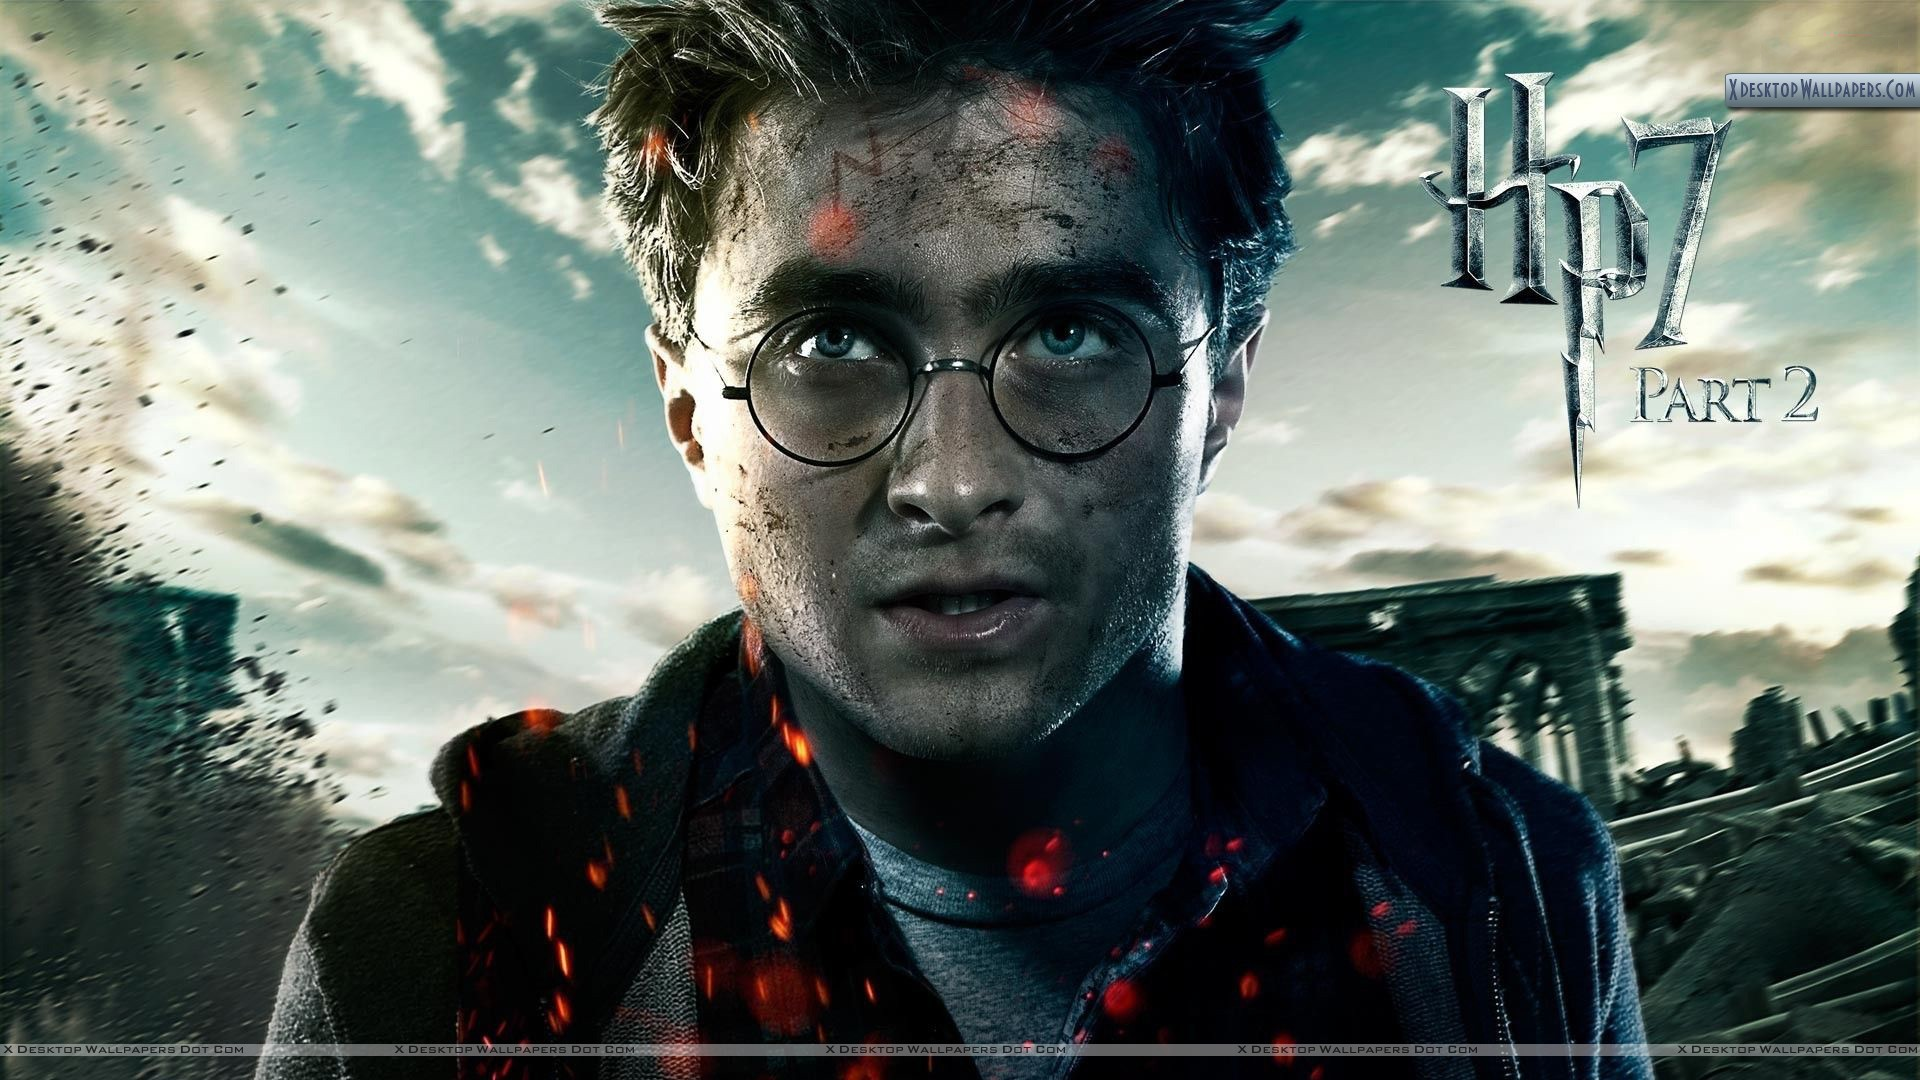 Daniel Radcliffe Harry Potter And The Deathly Hallows Part 2 Hallows Part 2 06 Aug 2011